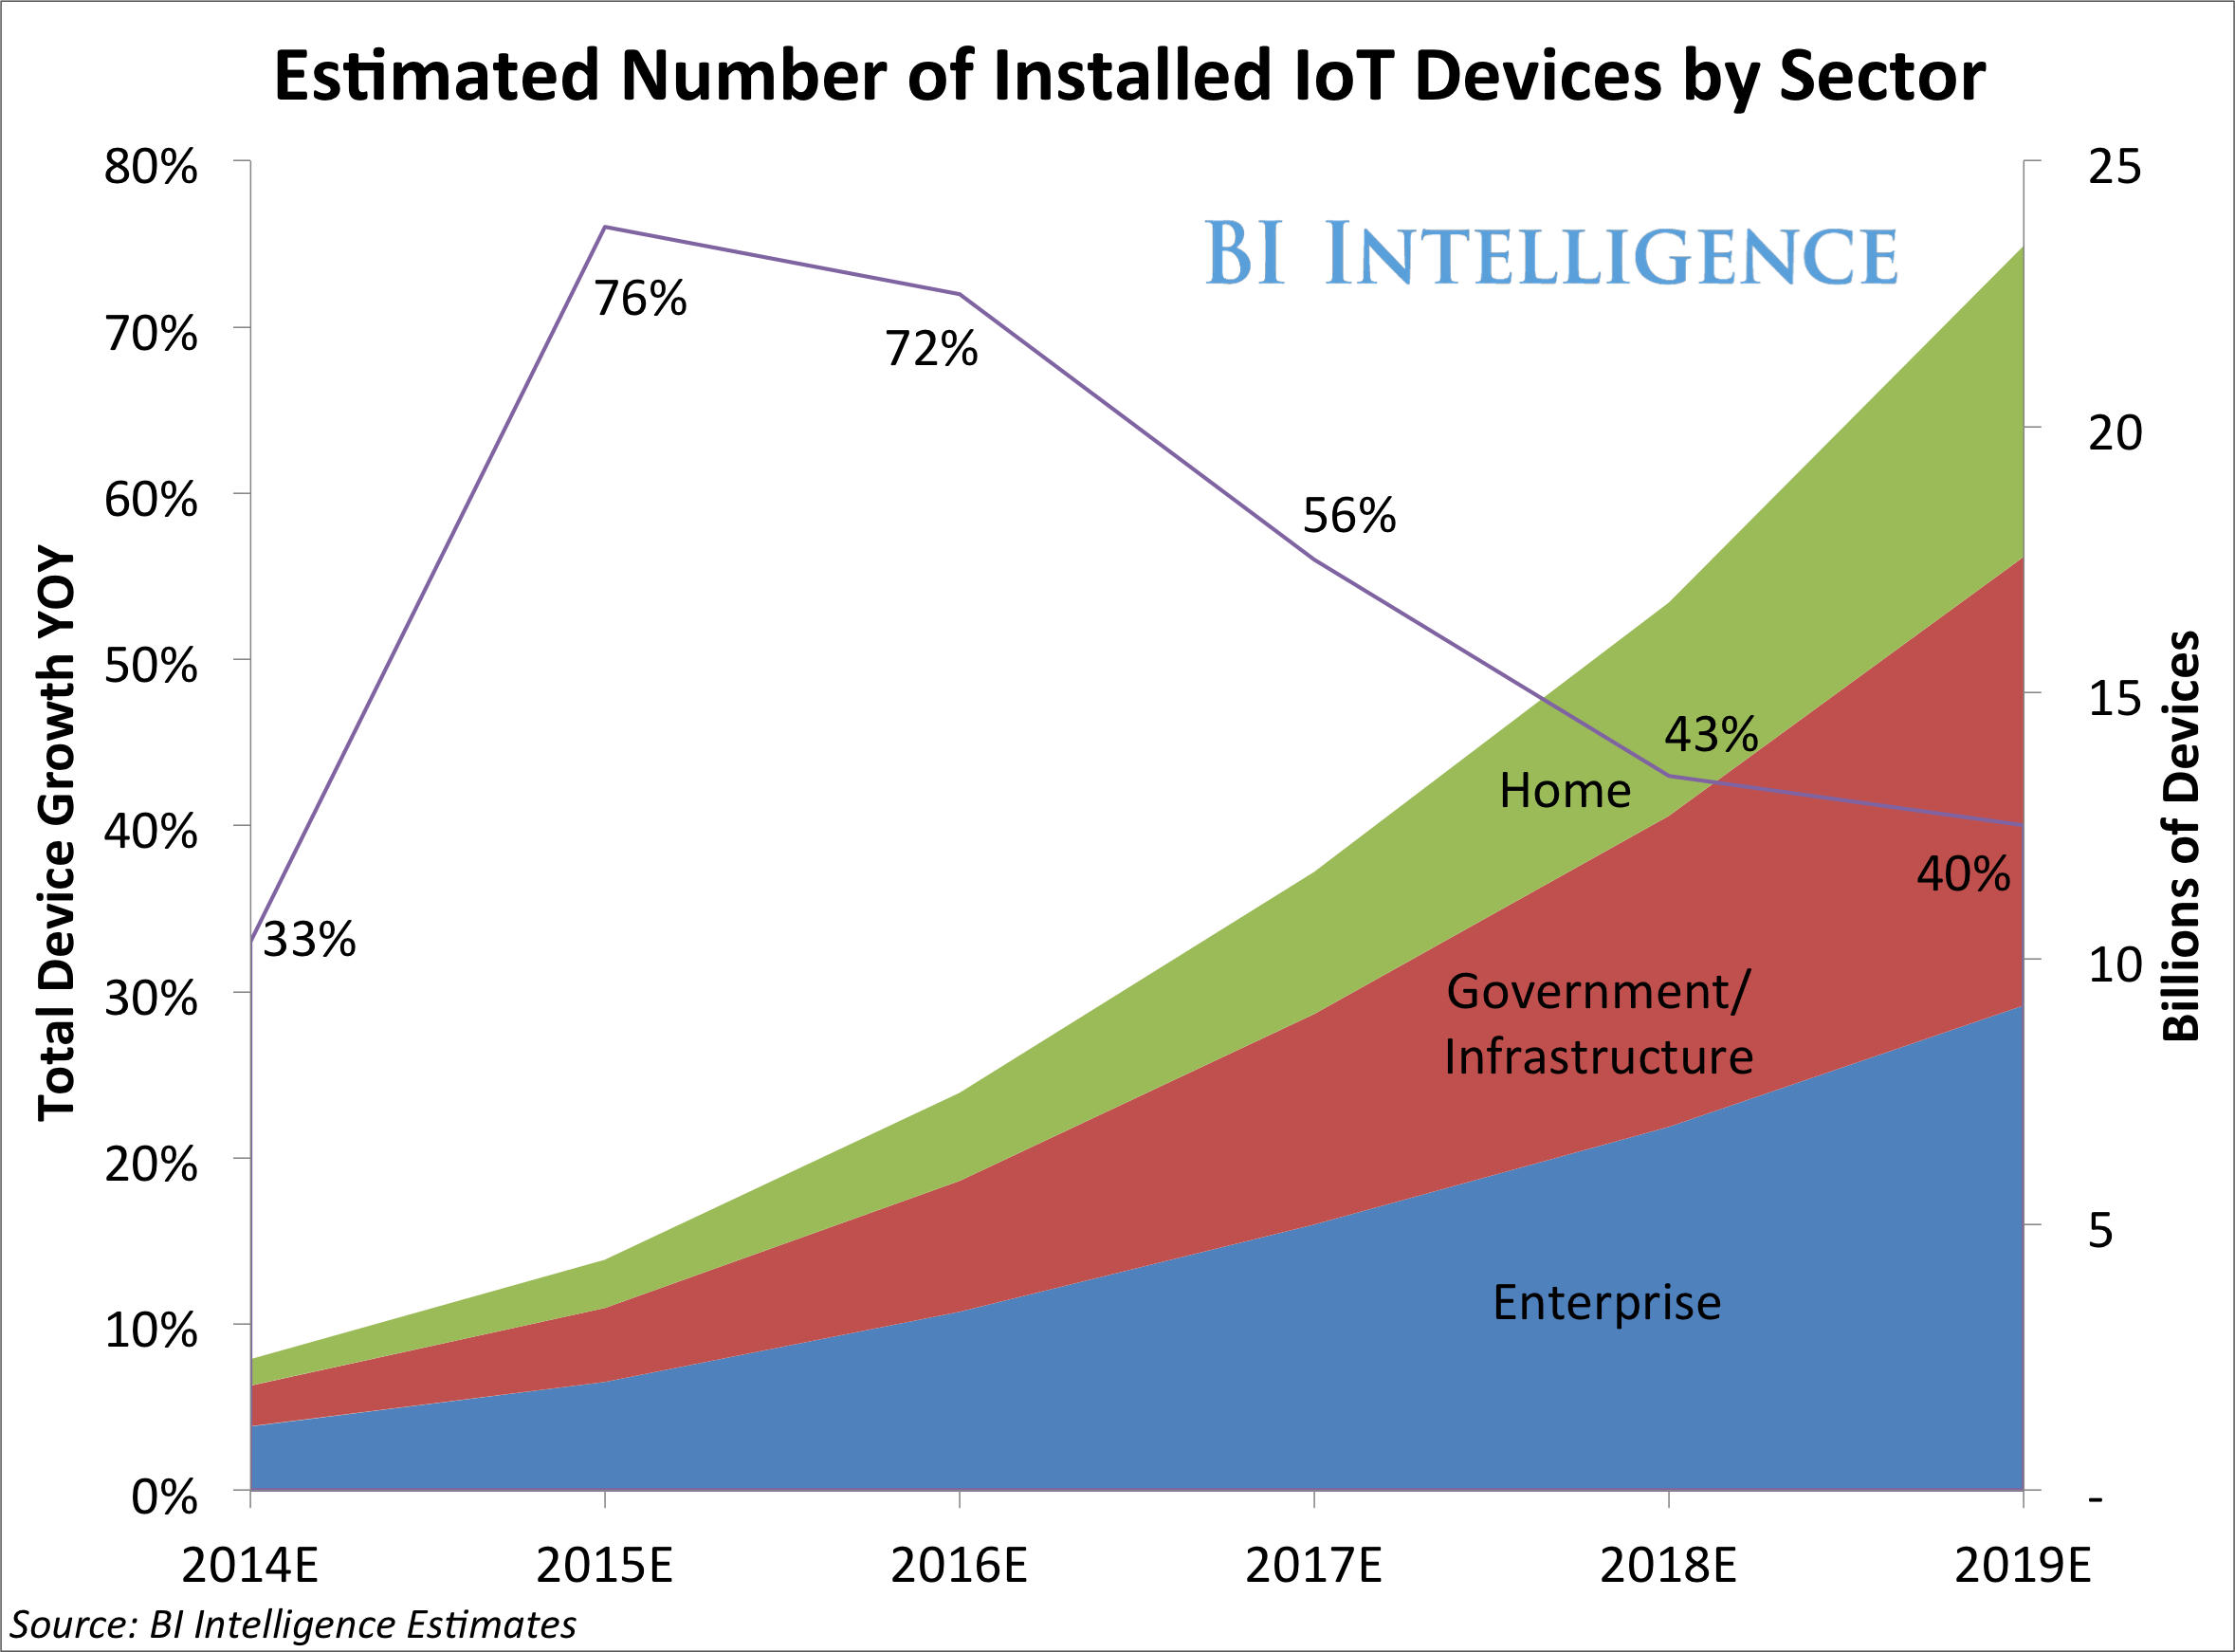 IoT devices by Sector